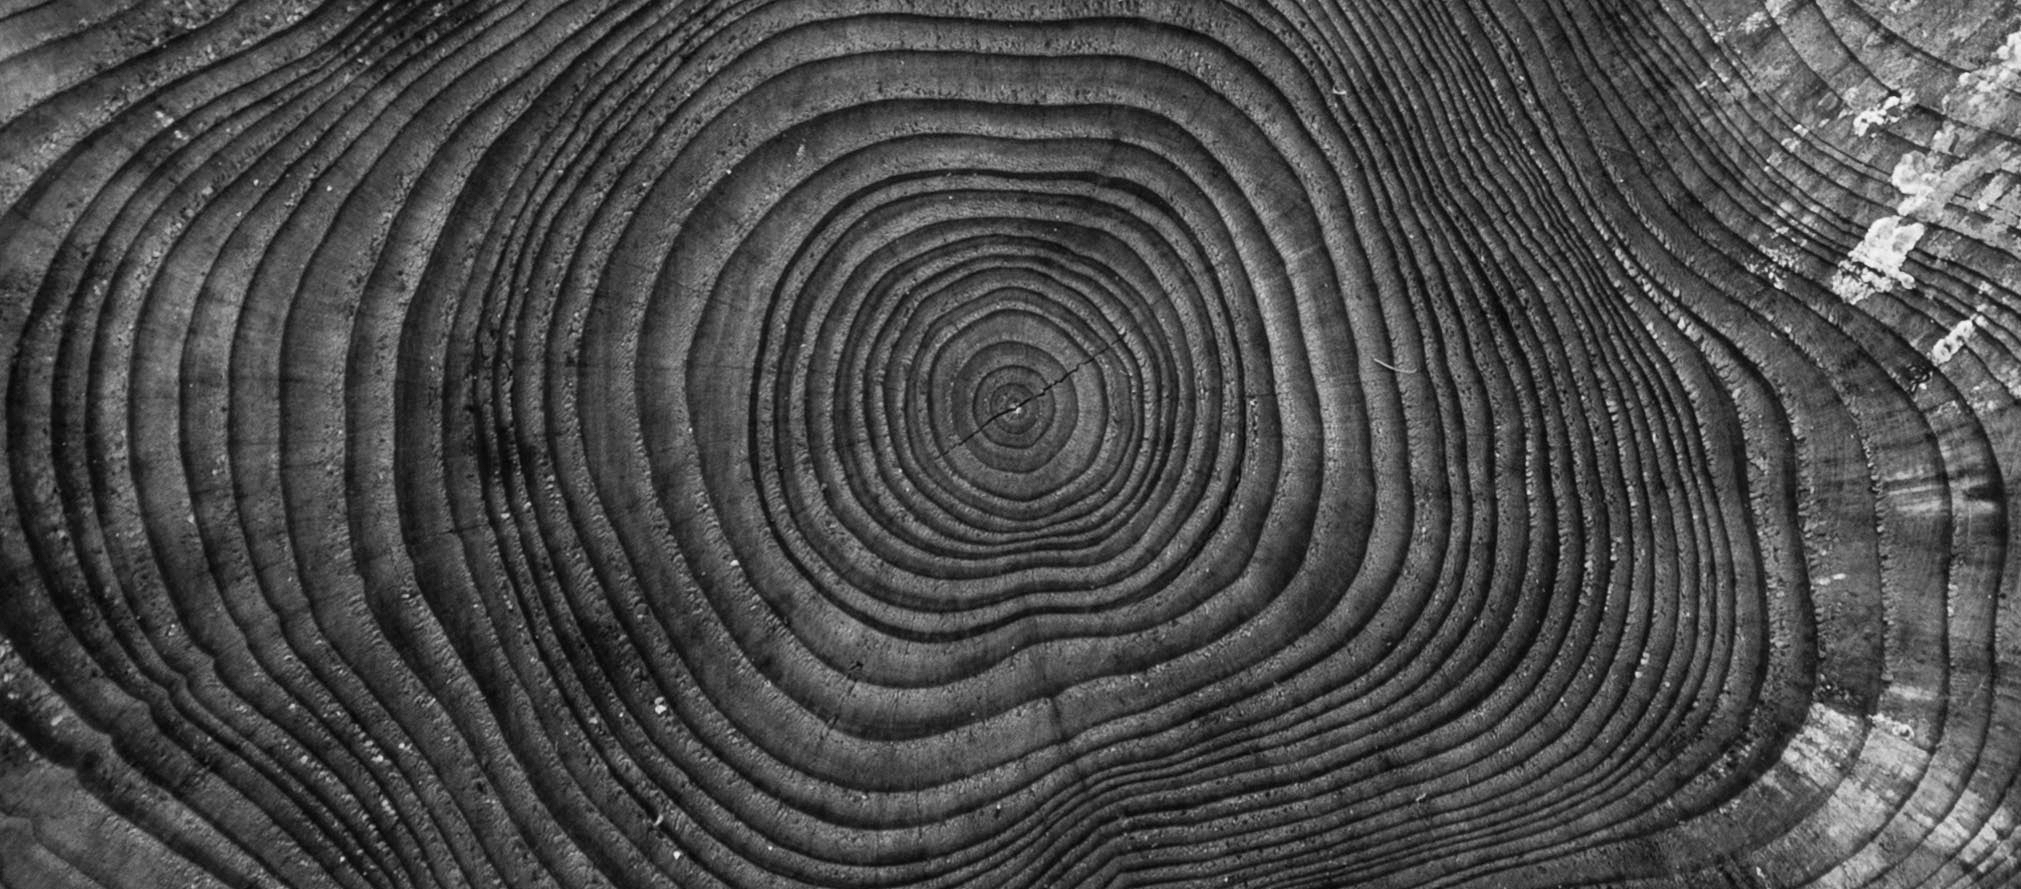 tree-nature-abstract-black-and-white-wood-photography-844367-pxhere.com